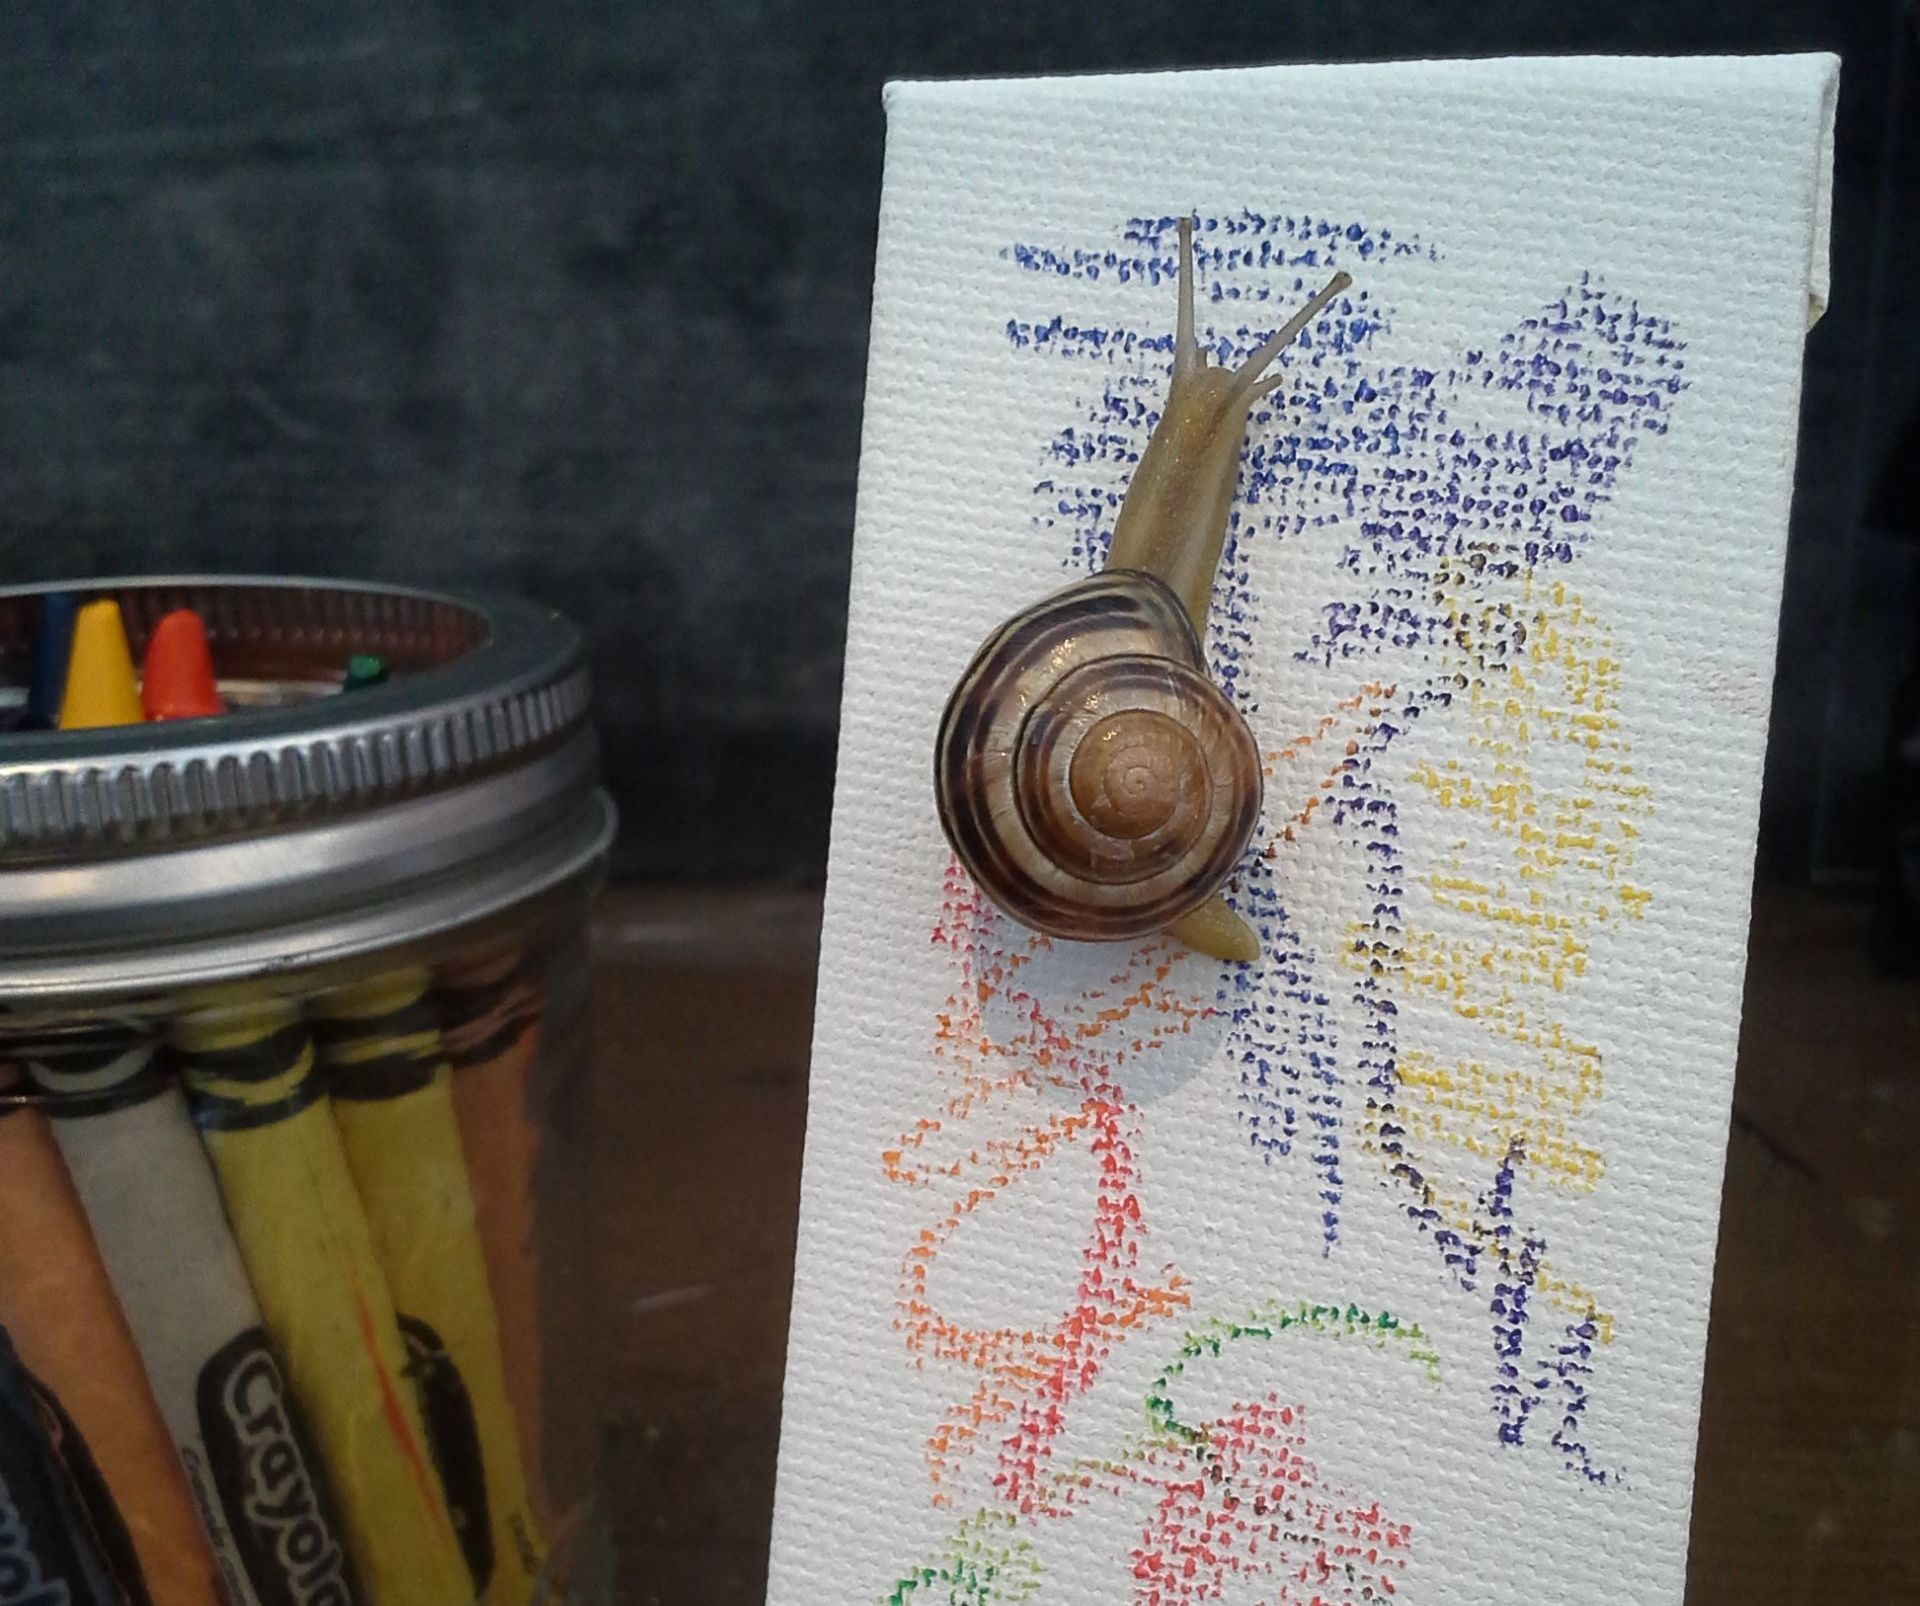 Snail Art: Making Art With Snails